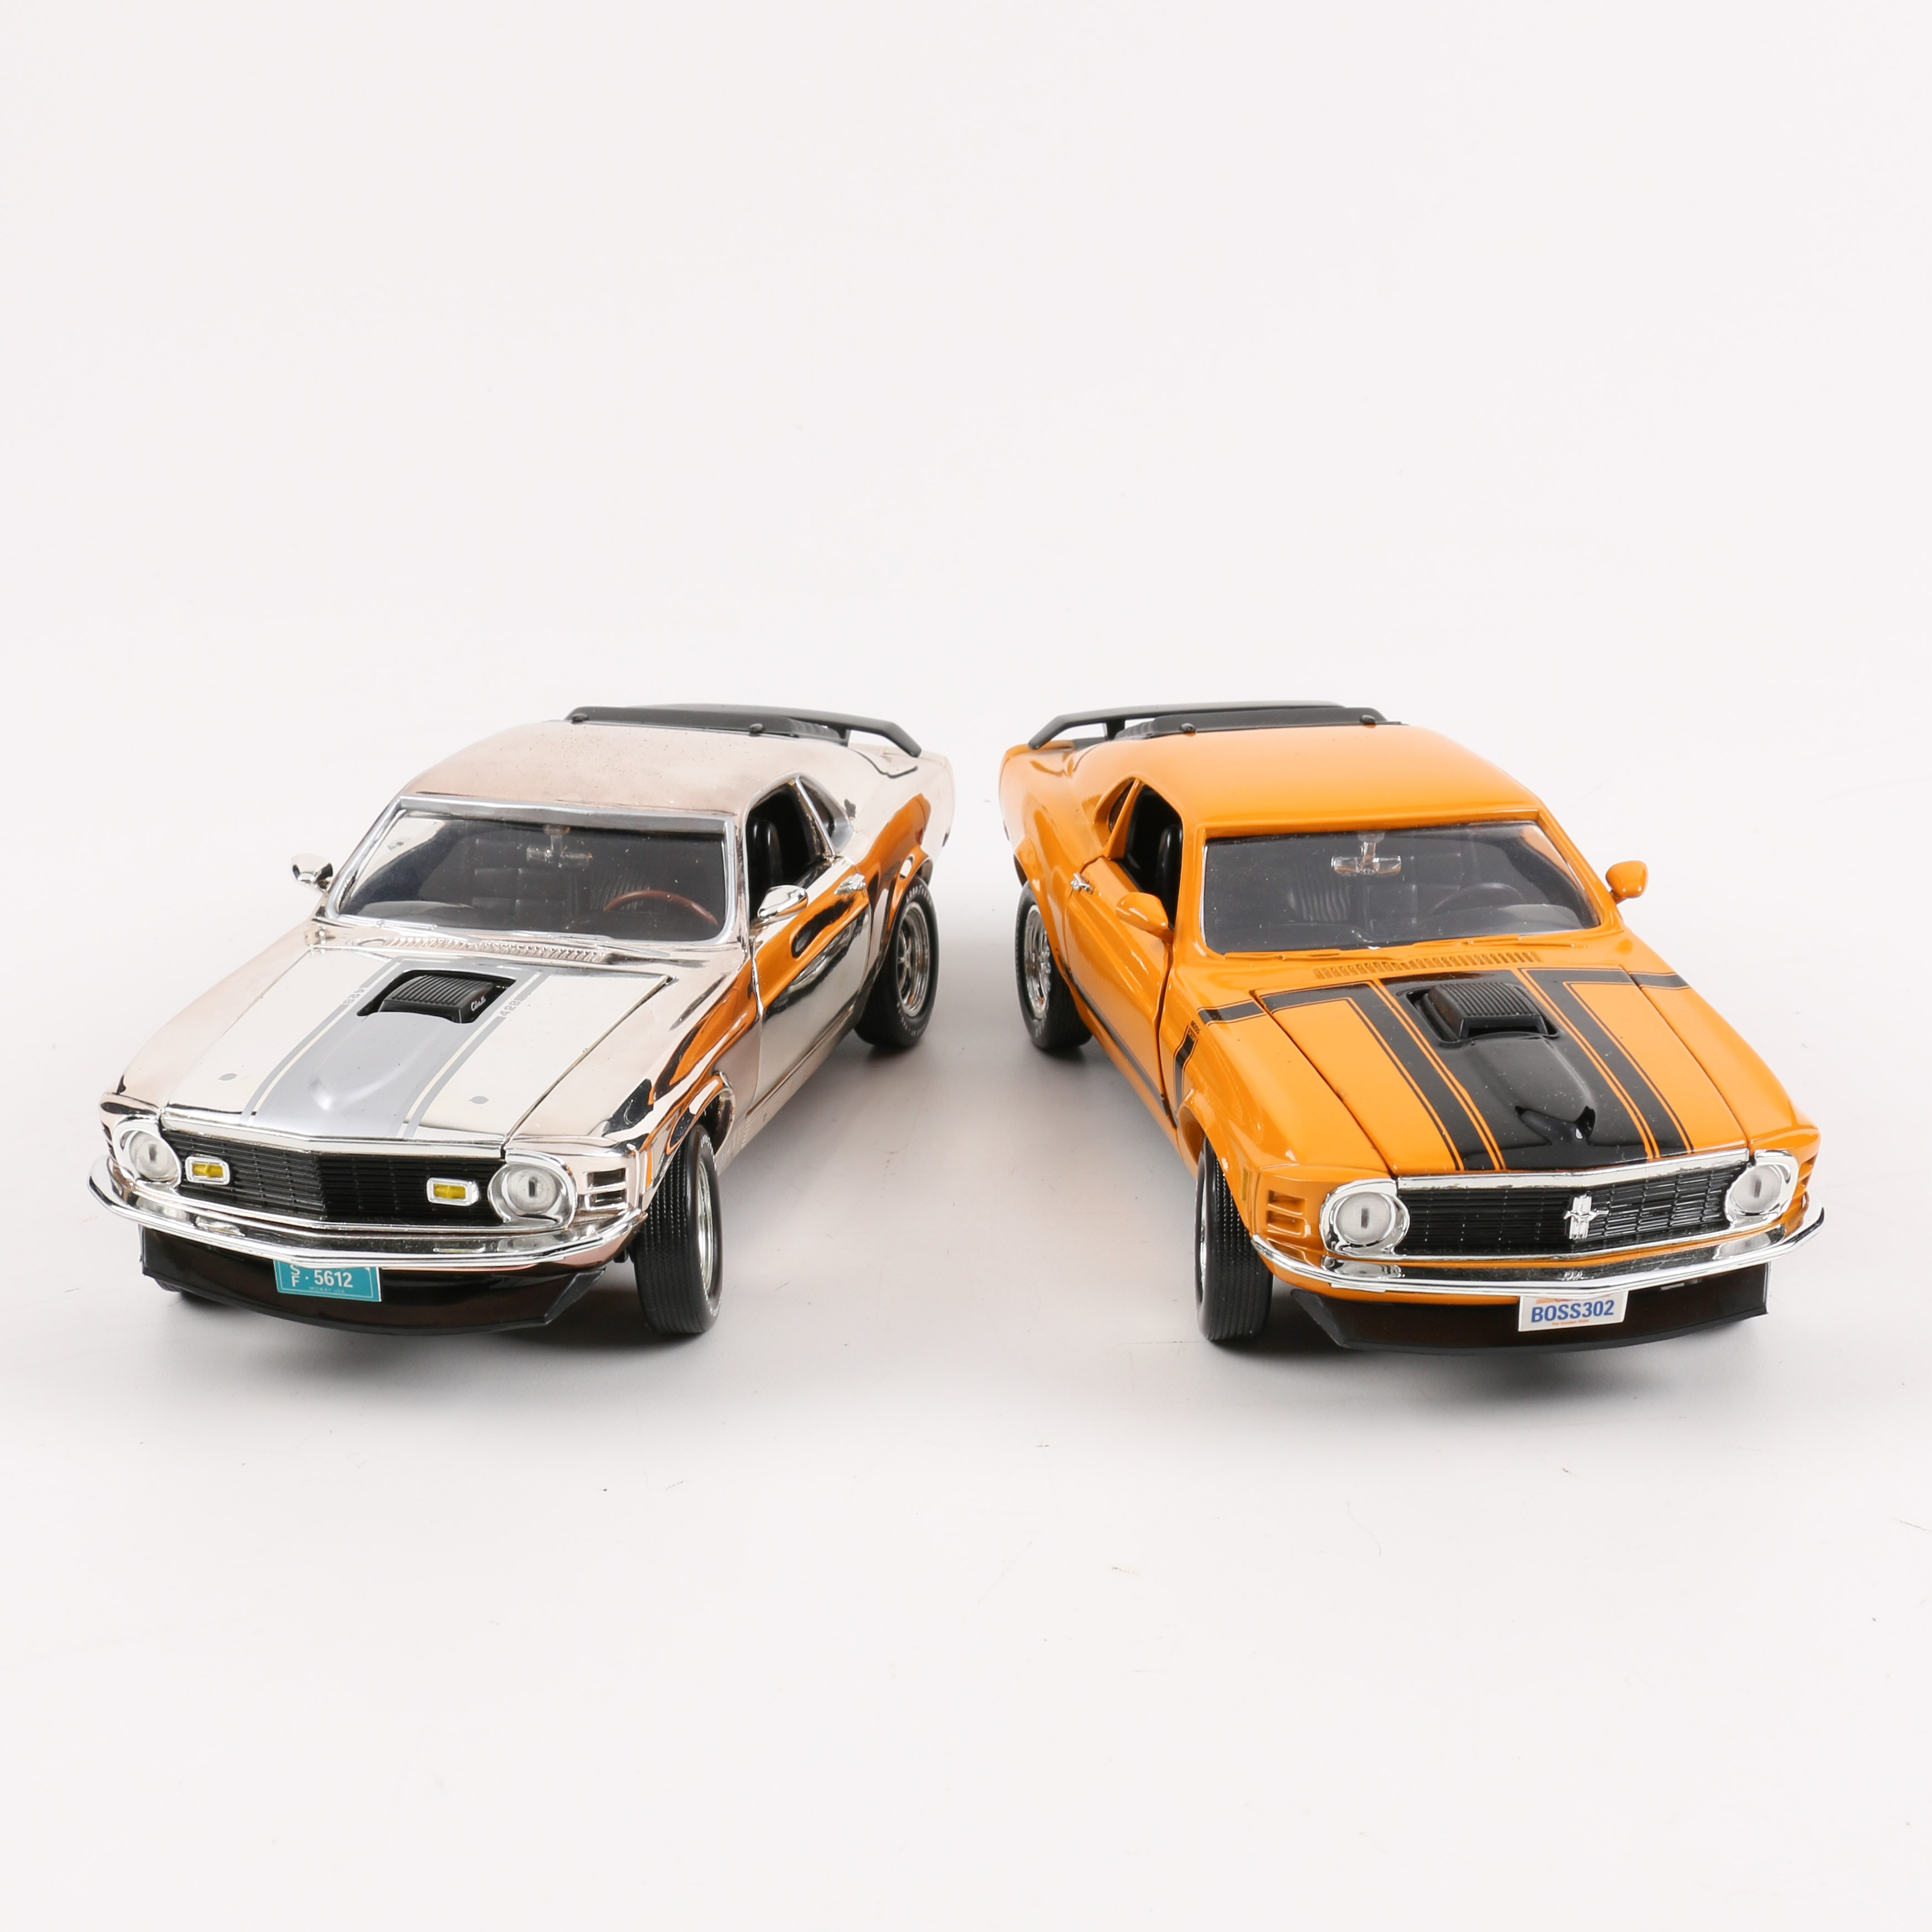 Pair of 1:18 Scale 1970 Ford Mustangs